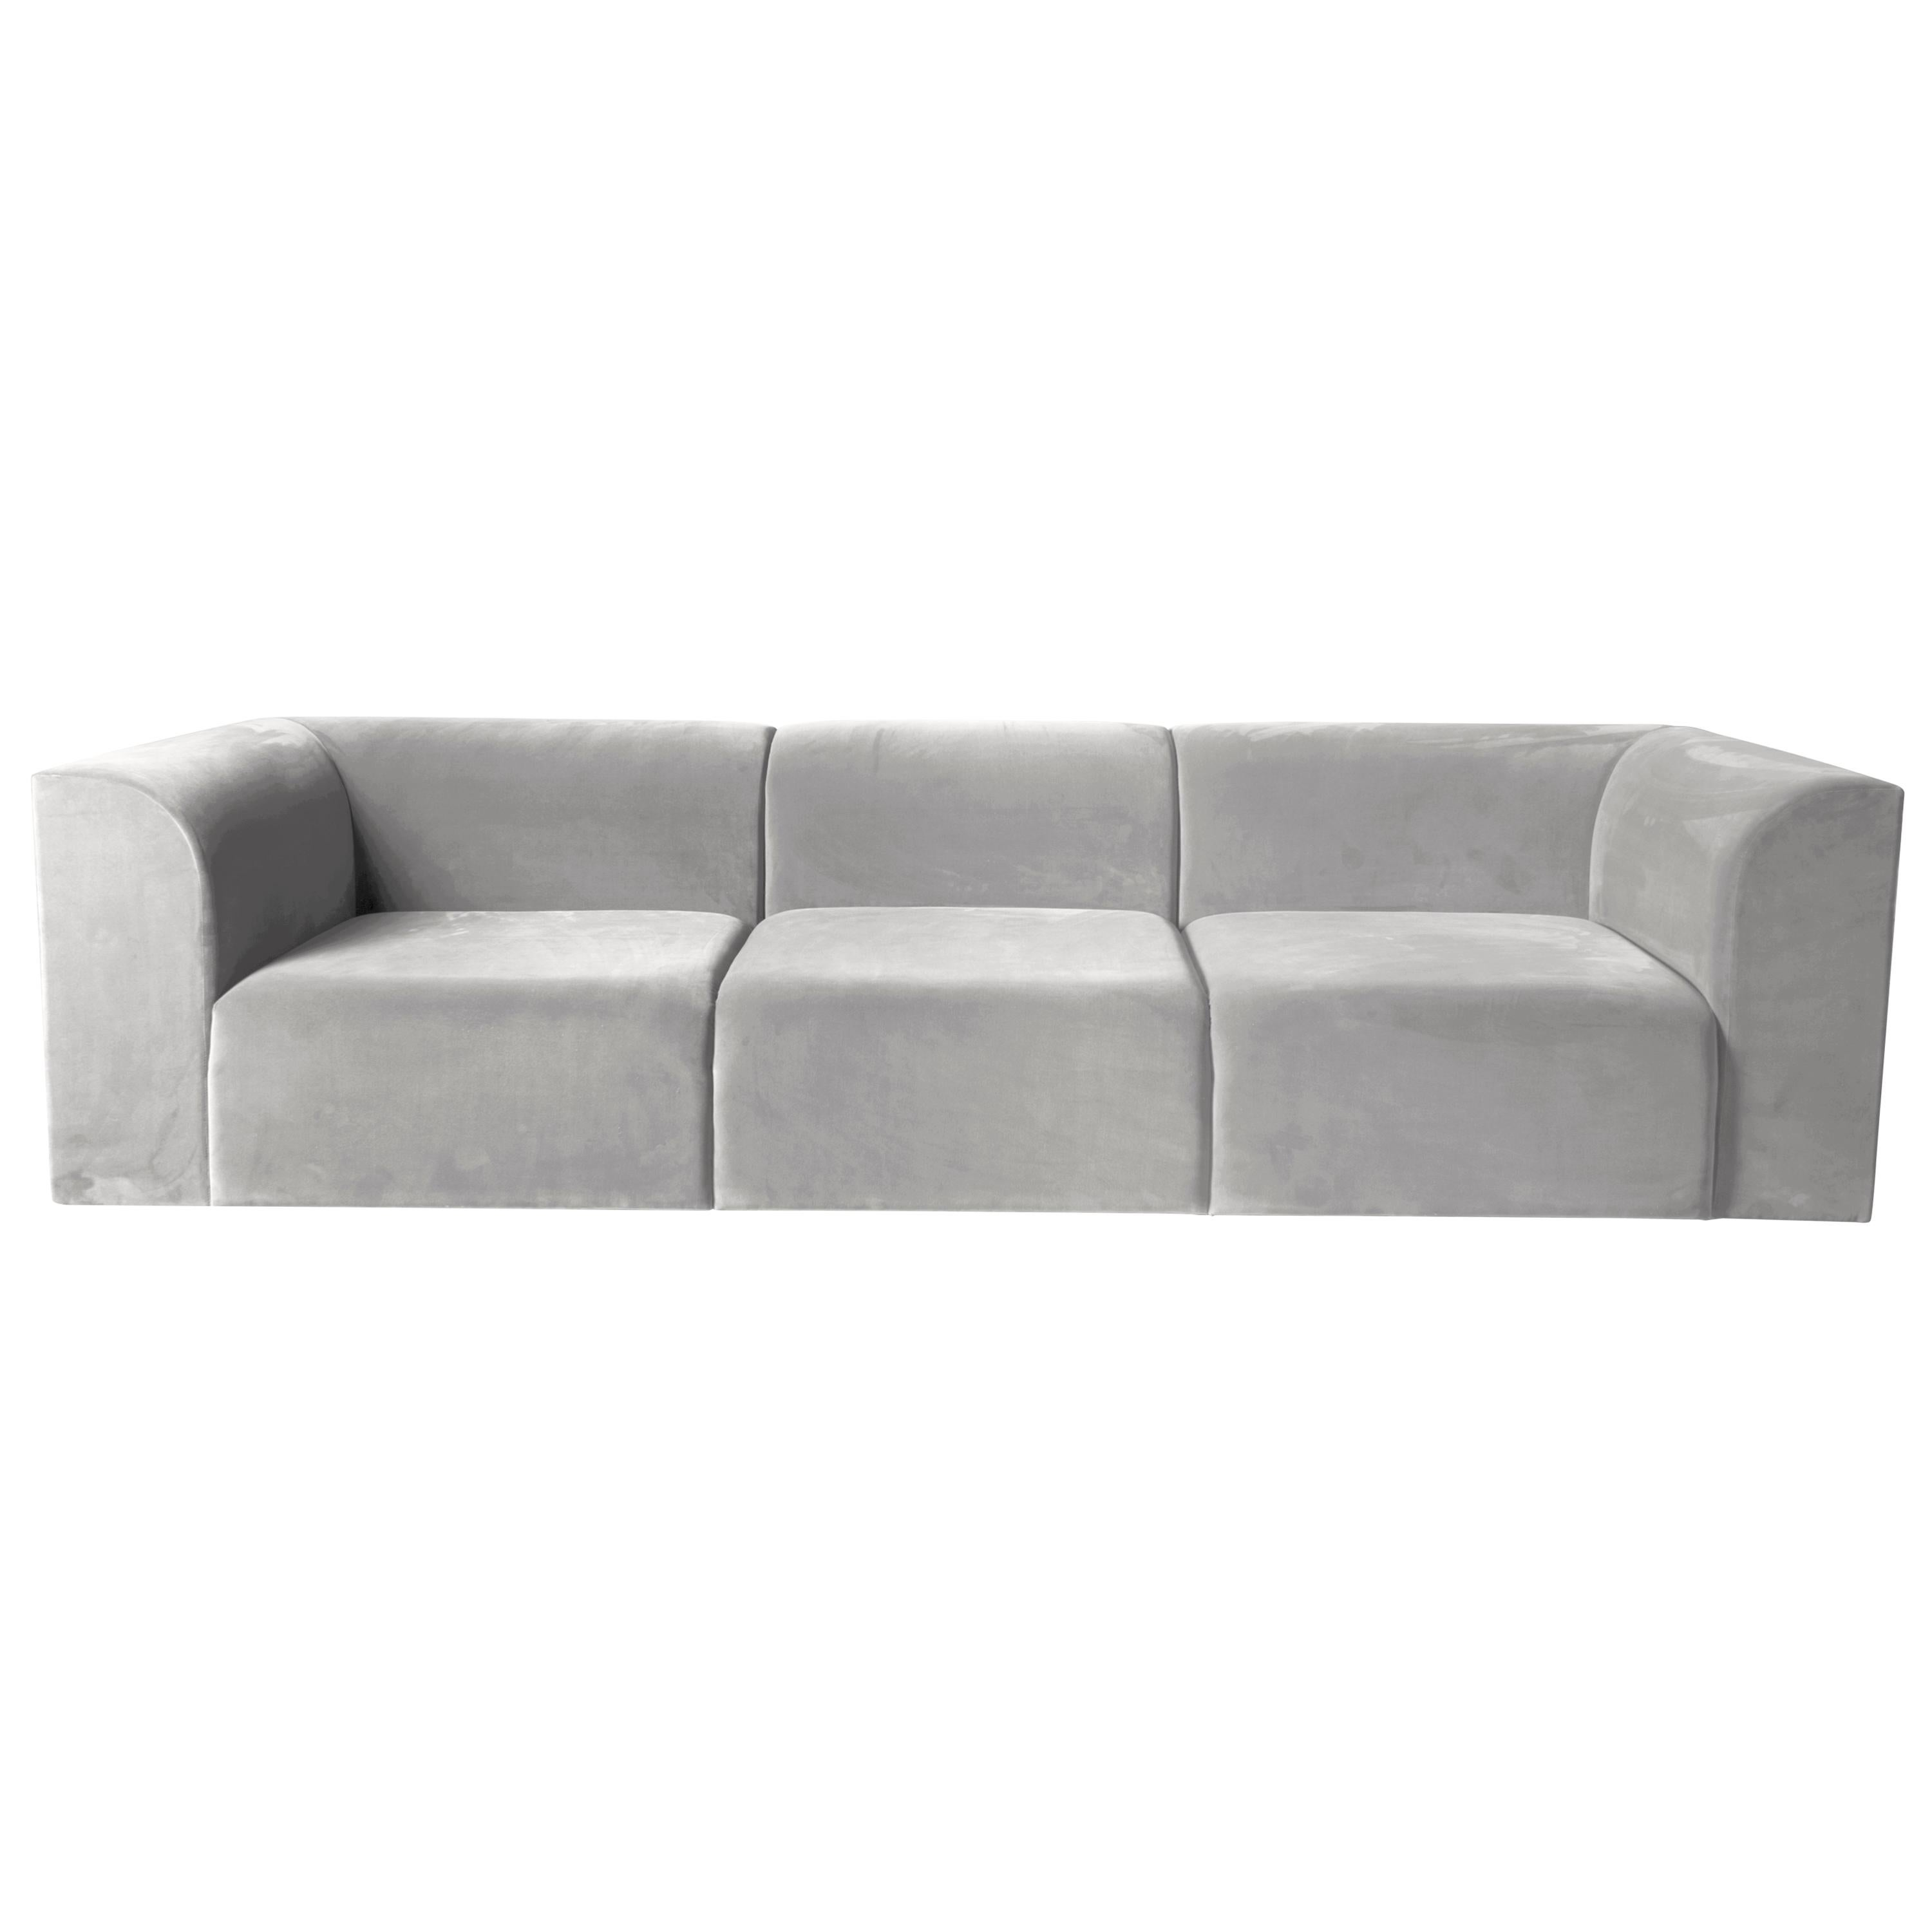 Brass sofas 396 for sale at 1stdibs